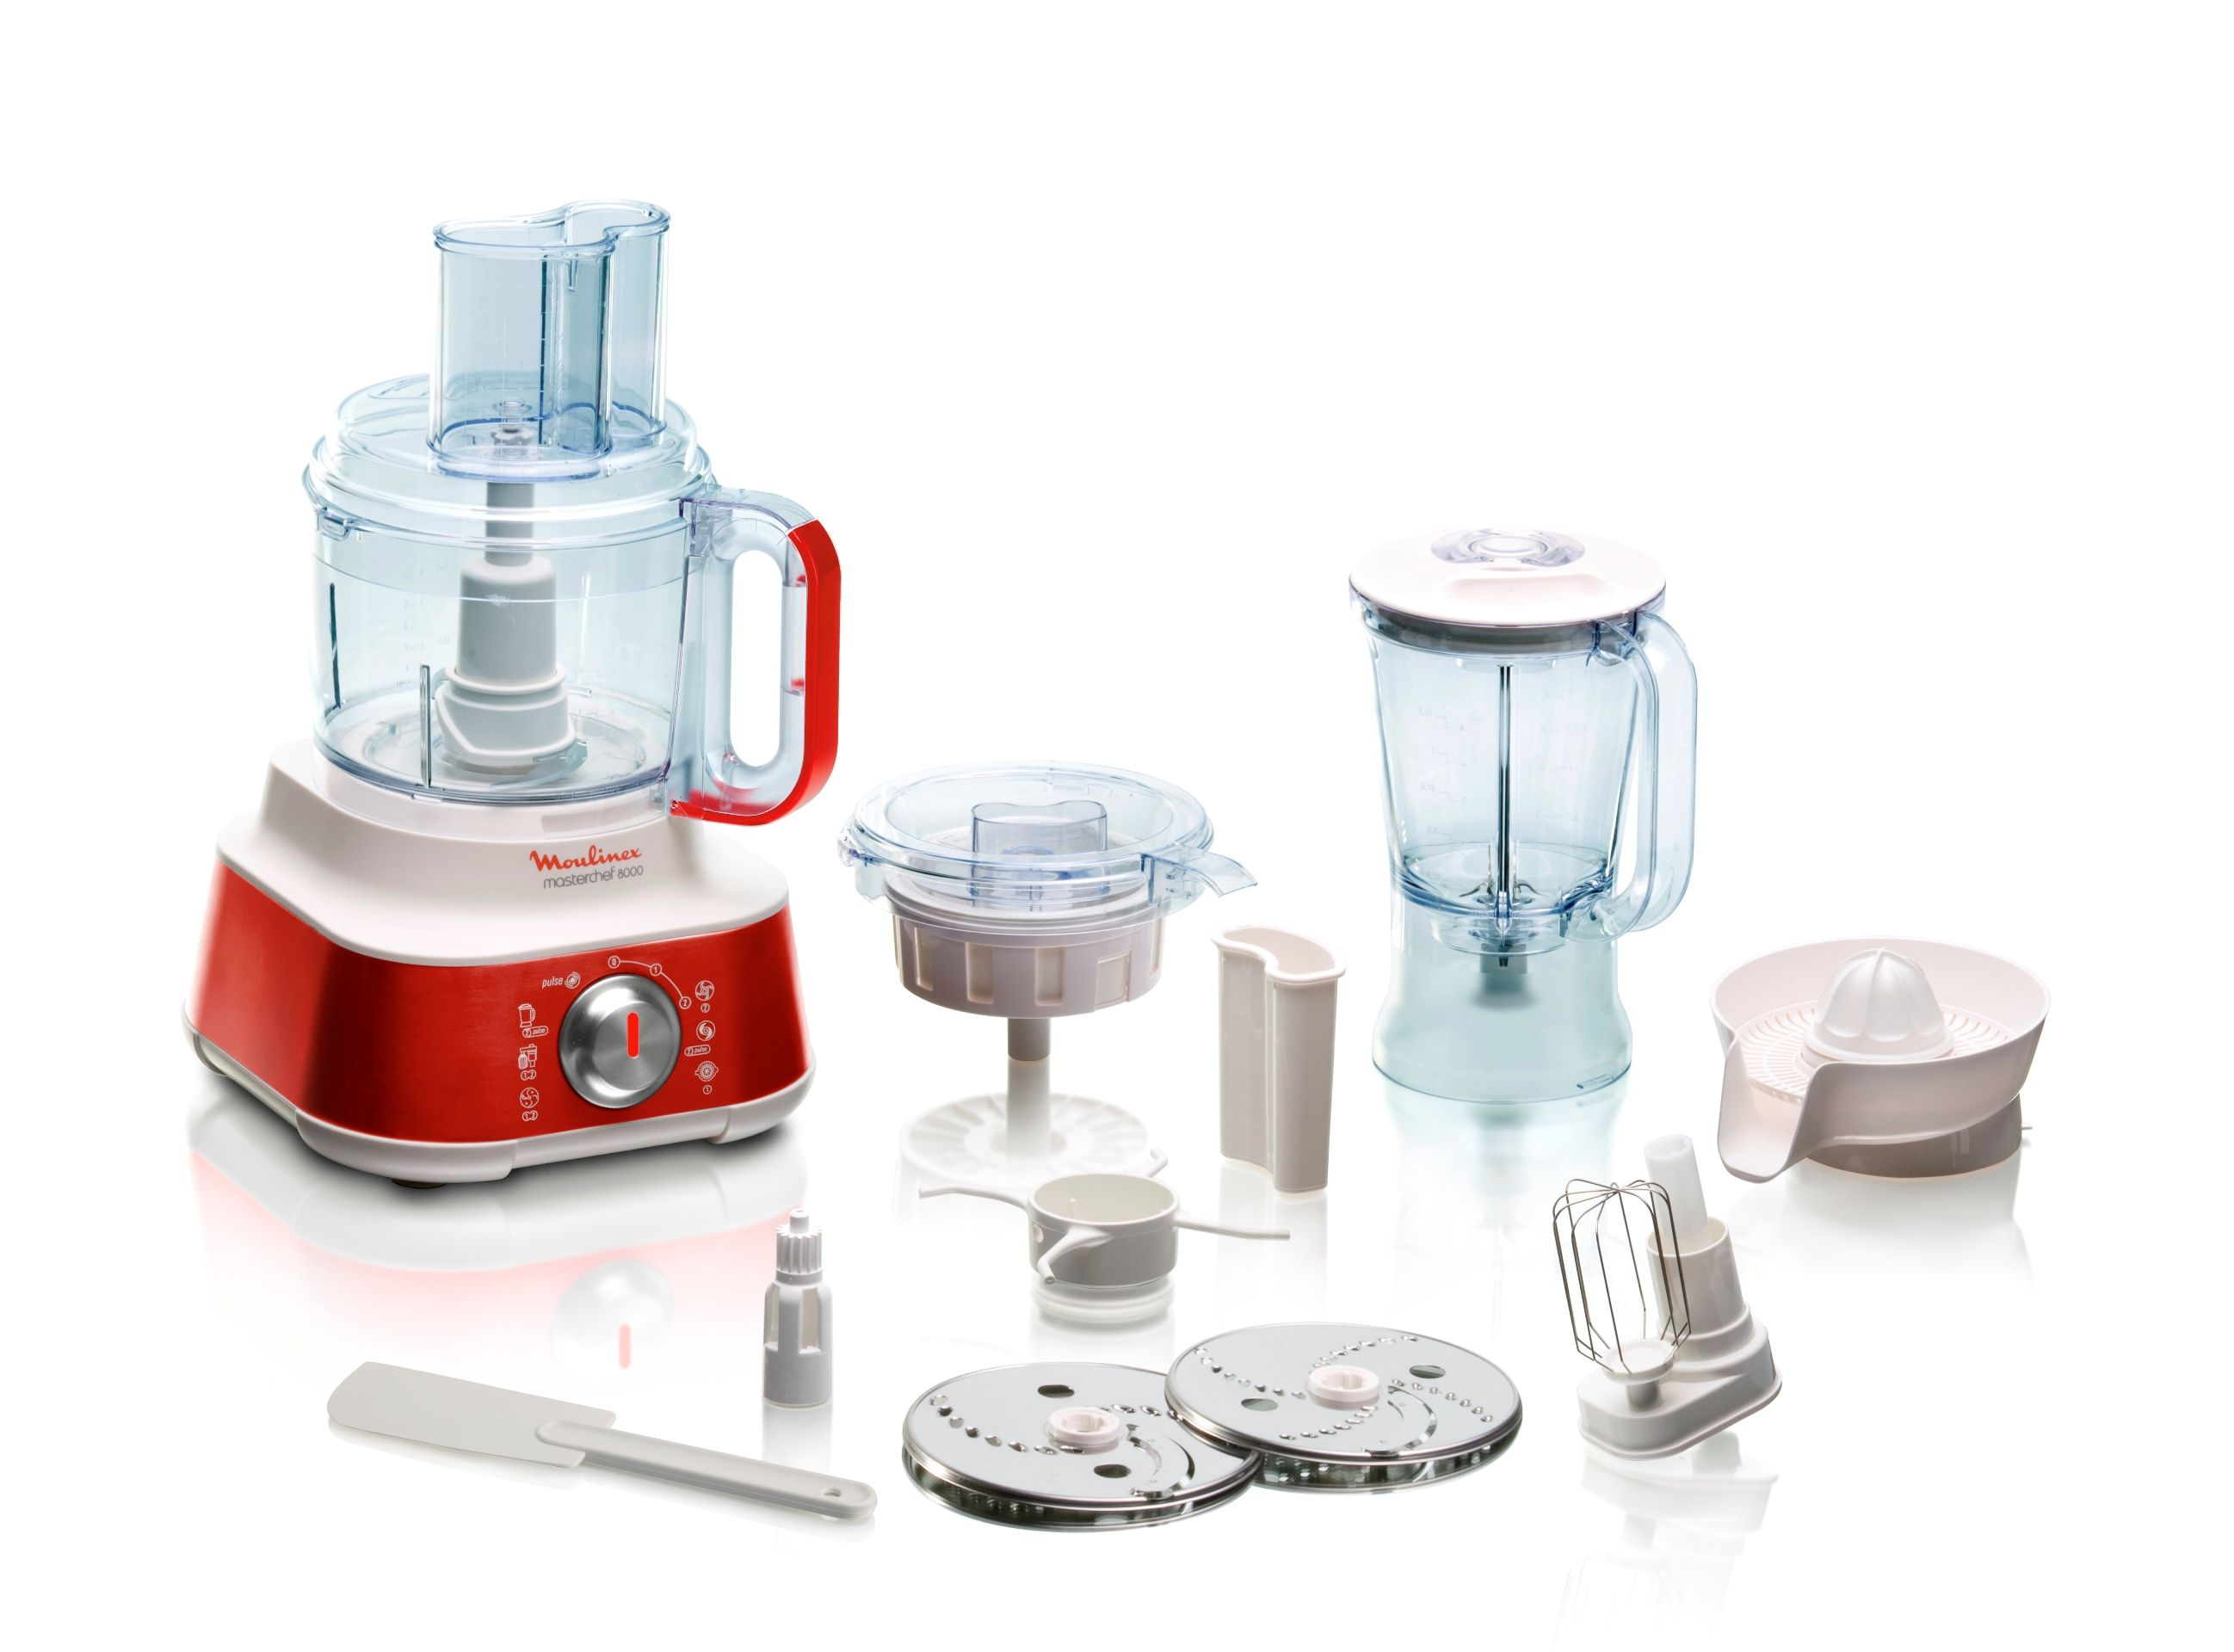 Top Best Moulinex Food Processors review 2018